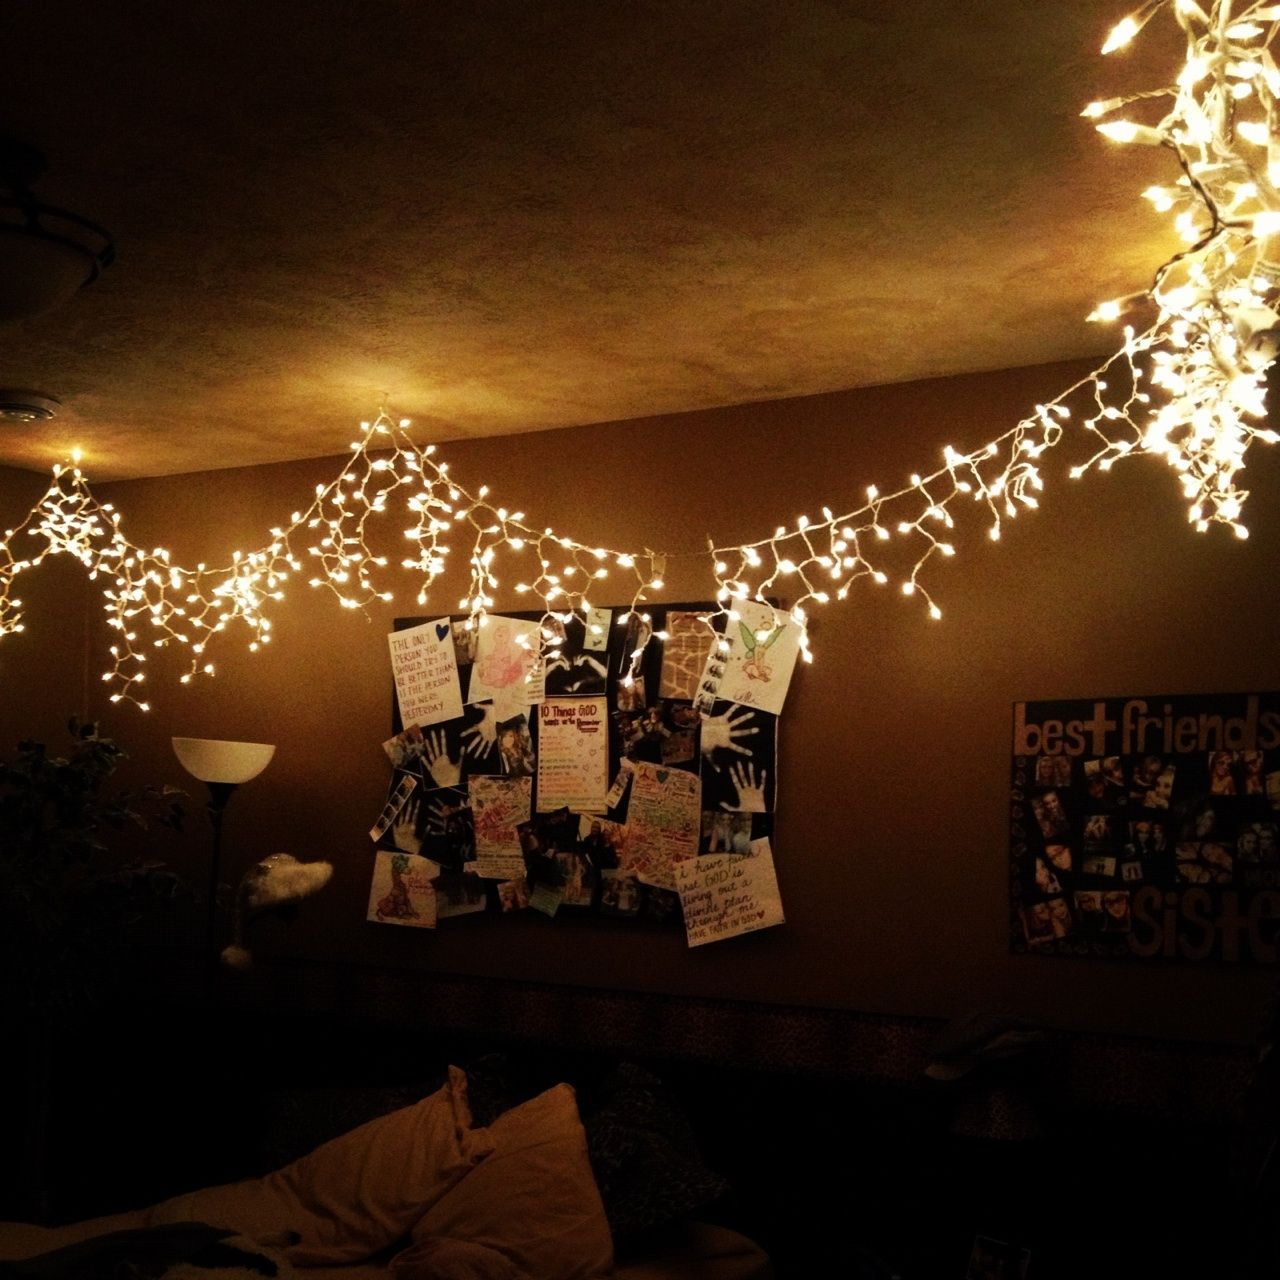 Decorating bedroom with christmas lights - Christmas Lights In Room Es Chang E 3